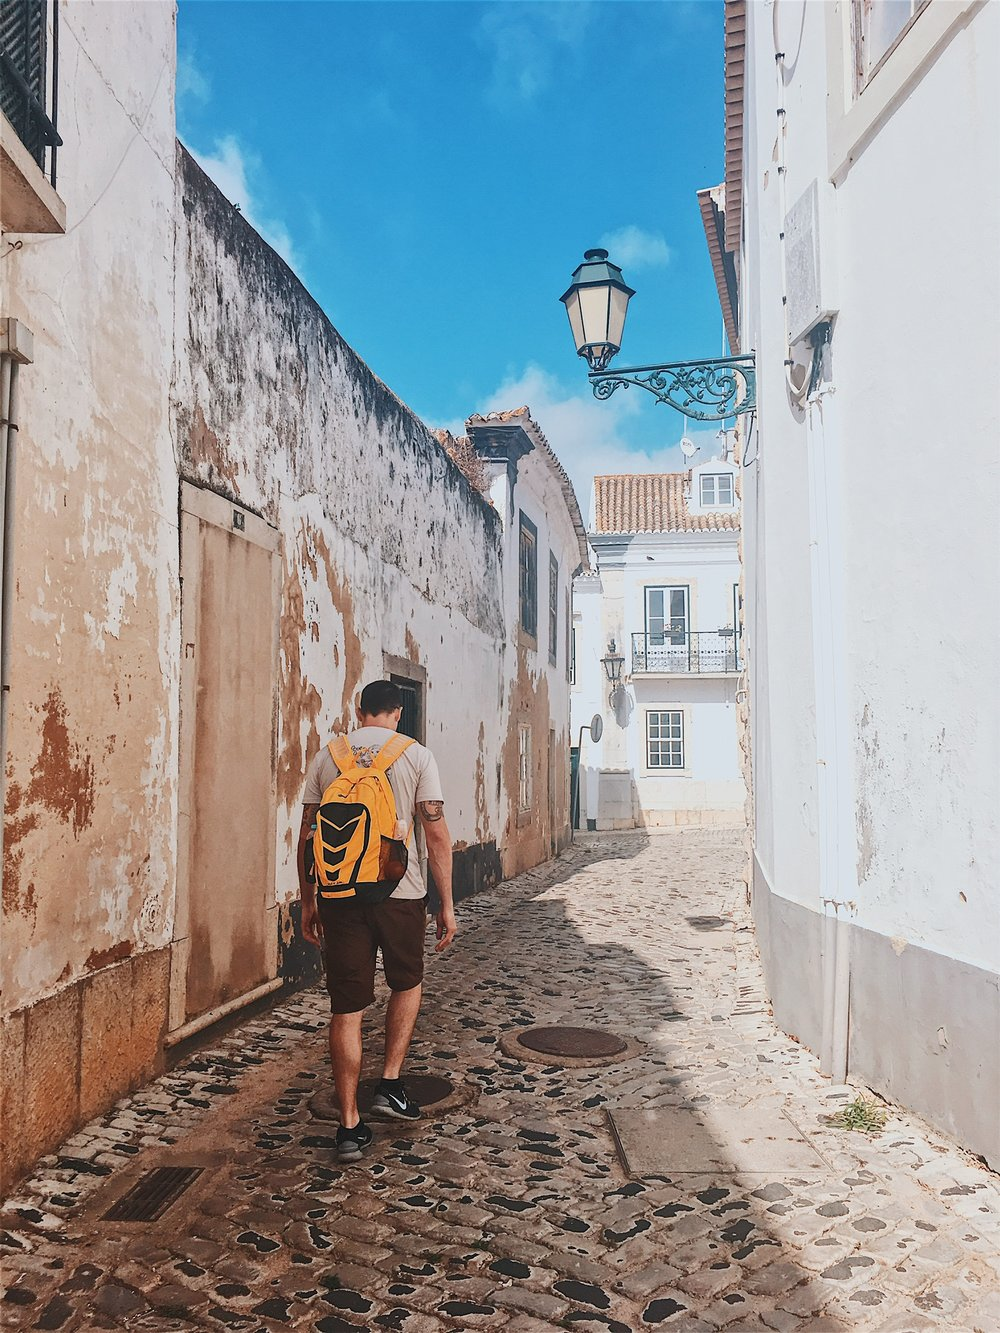 Wandering the streets of Faro